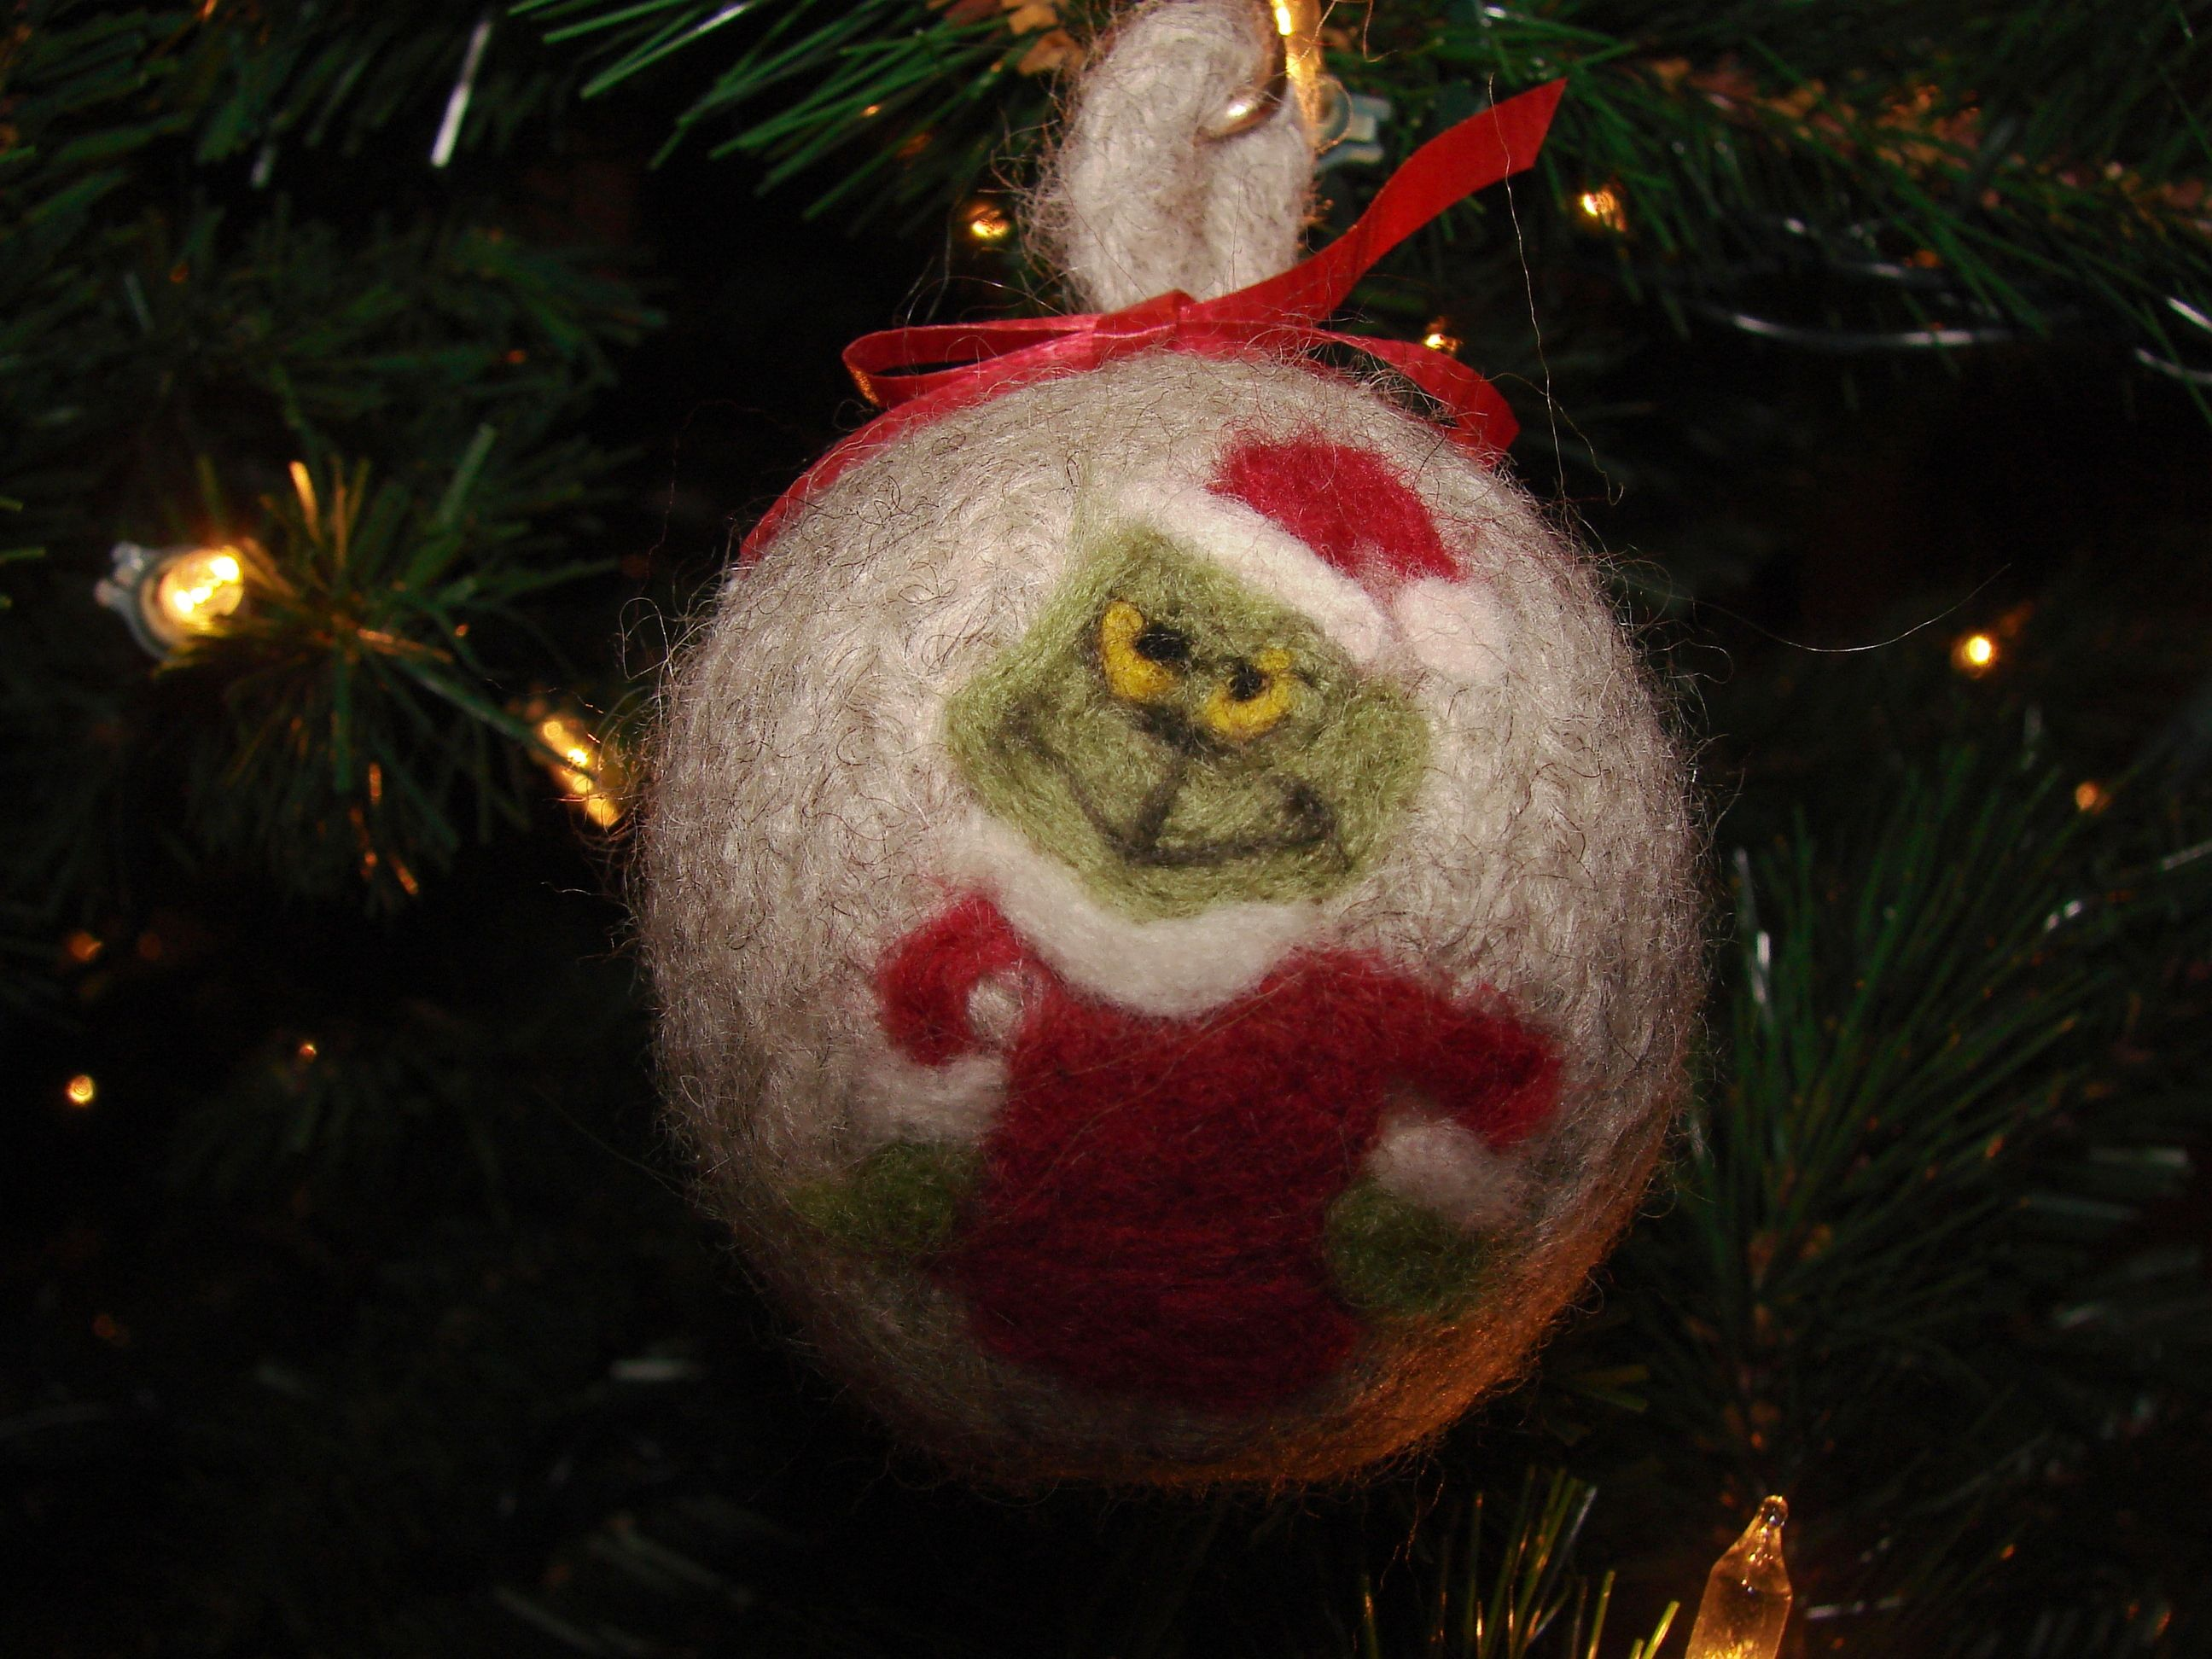 Felted Ornament With The Grinch Felt Ornaments Grinch Christmas Grinch